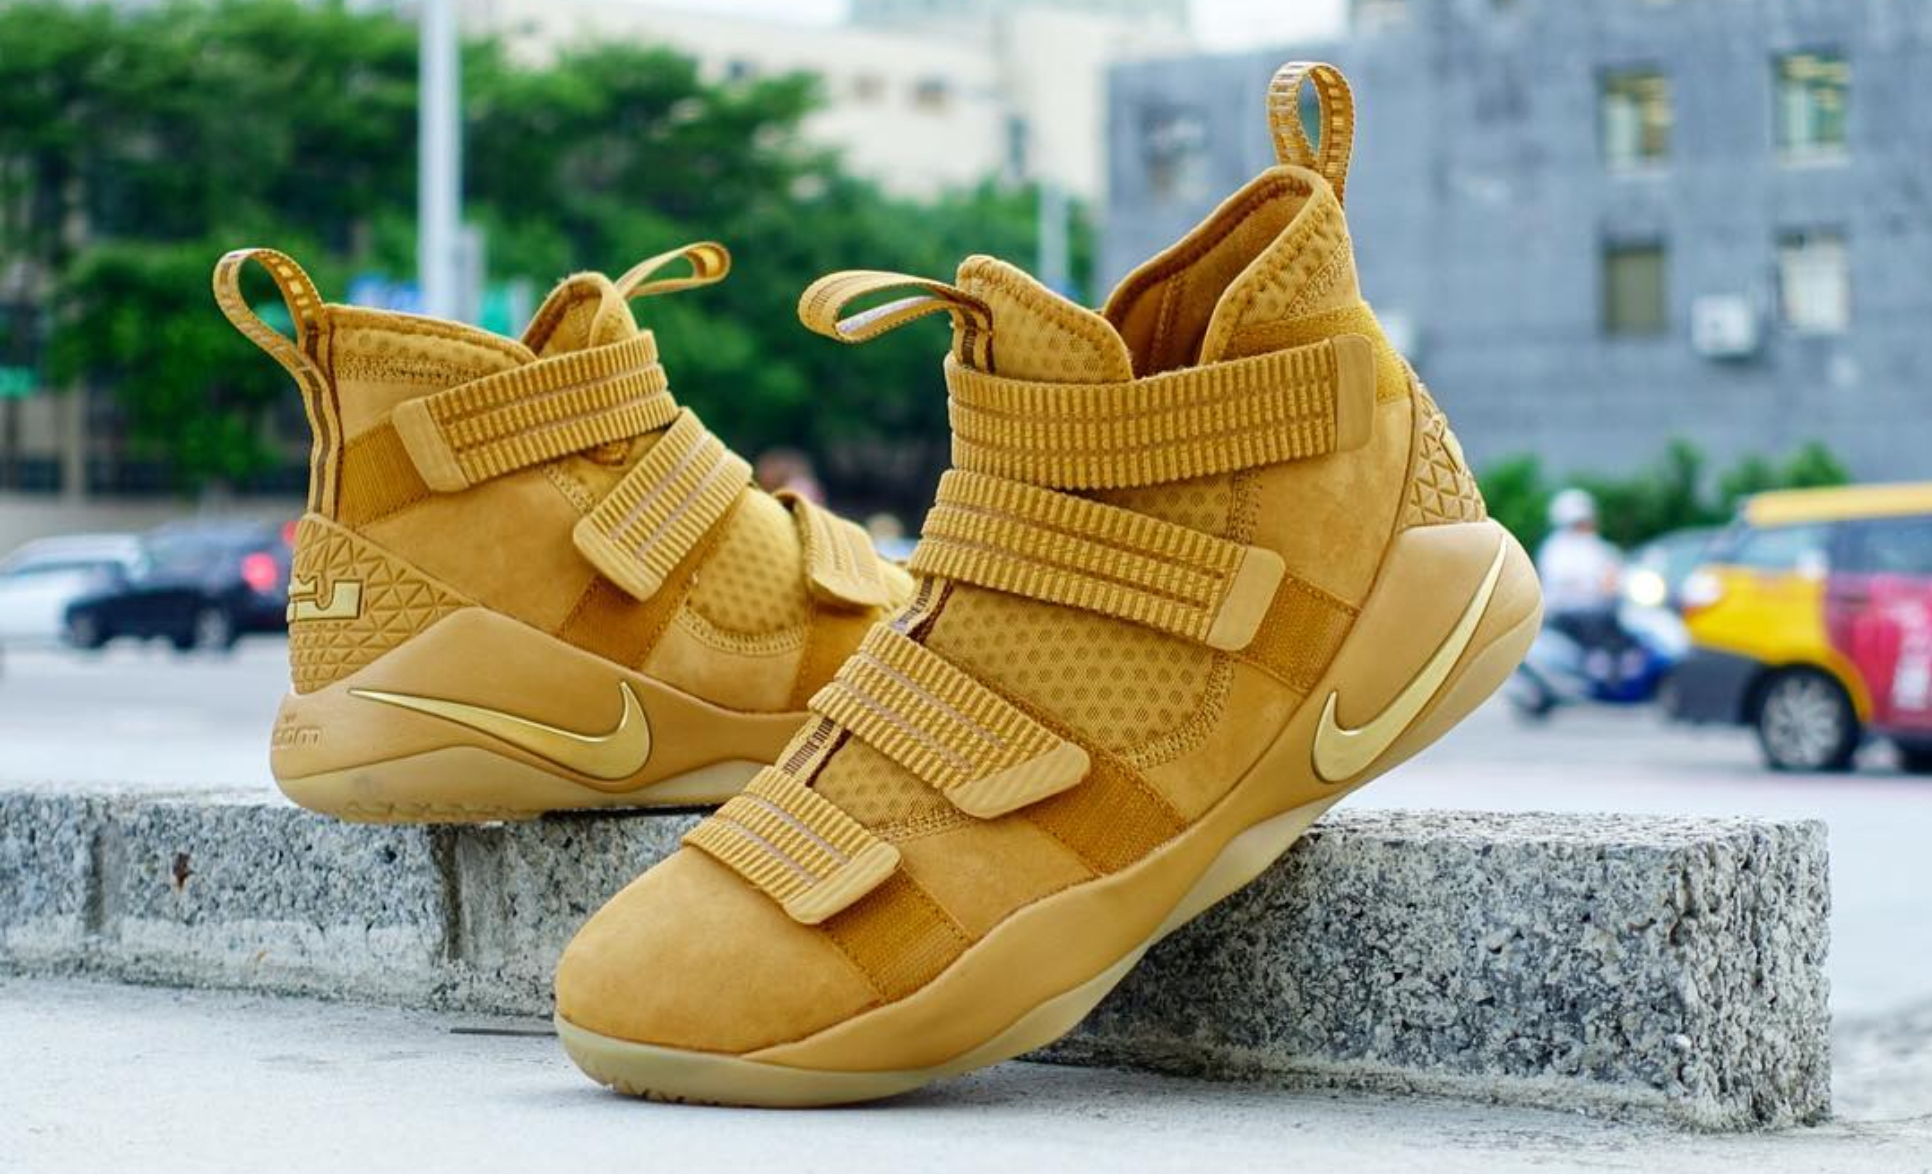 There is a Wheat Nike LeBron Soldier 11 SFG Coming - WearTesters eb4cfed4e